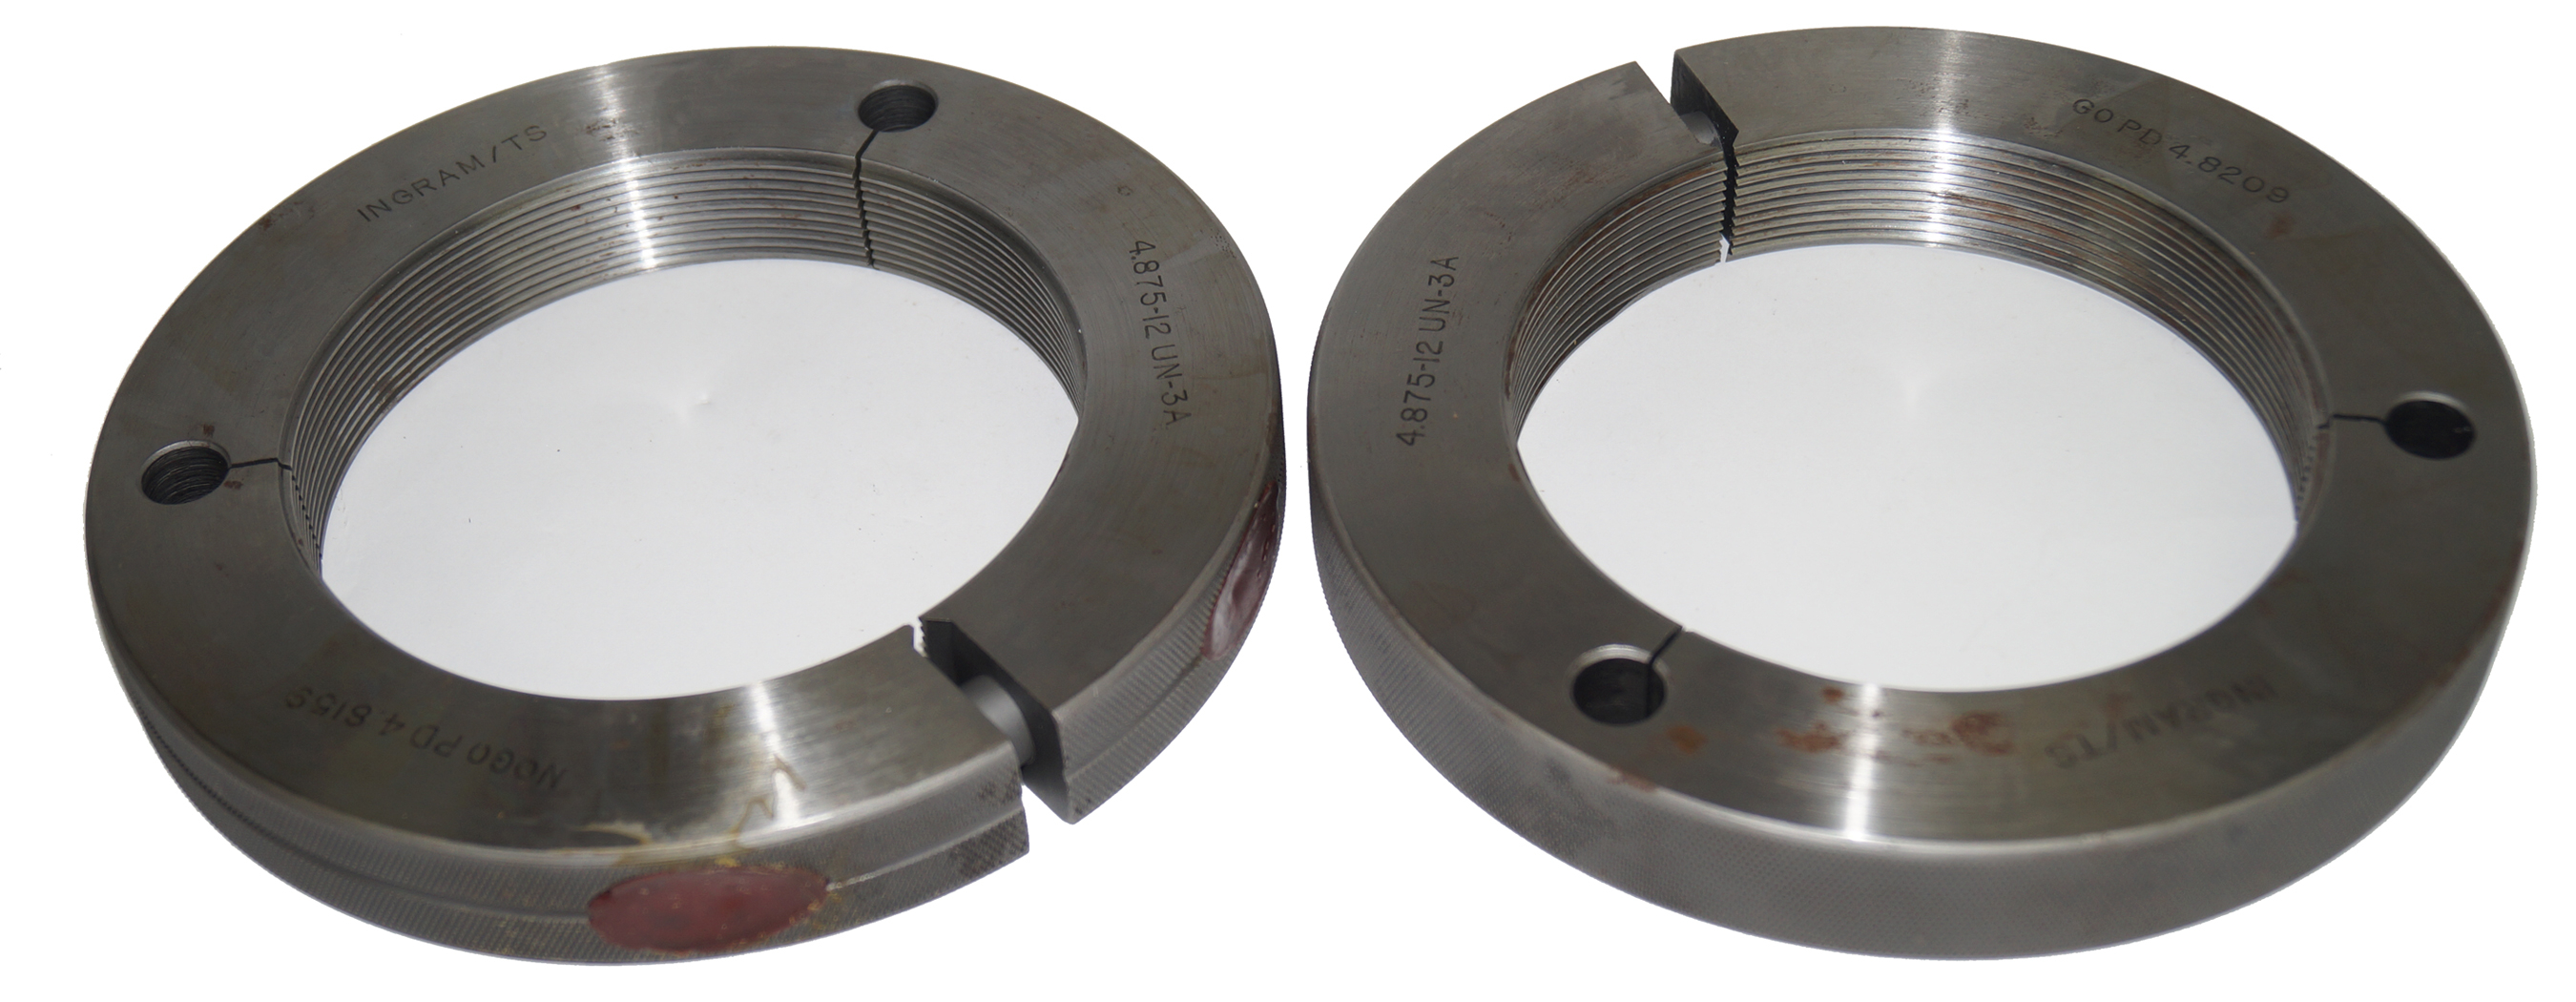 4-7/8-12-UN-3B Thread Ring Gage Go NoGo, 4.875 4.8209 4.8159